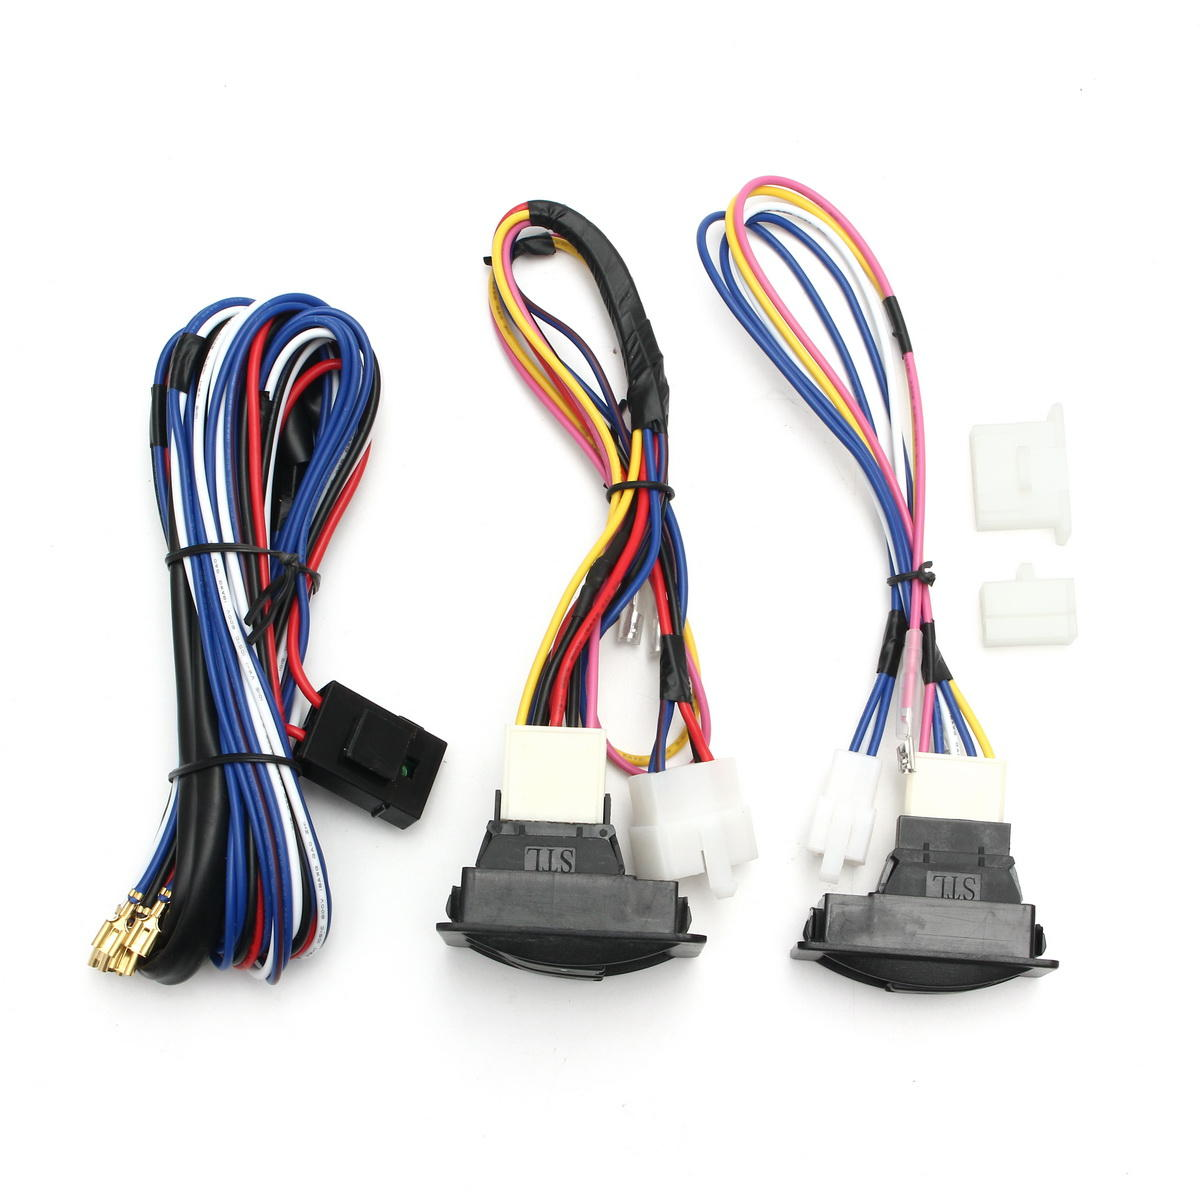 hight resolution of 6pcs 12v universal power window switch kits with installation wiring power window switch wiring harness 6pcs